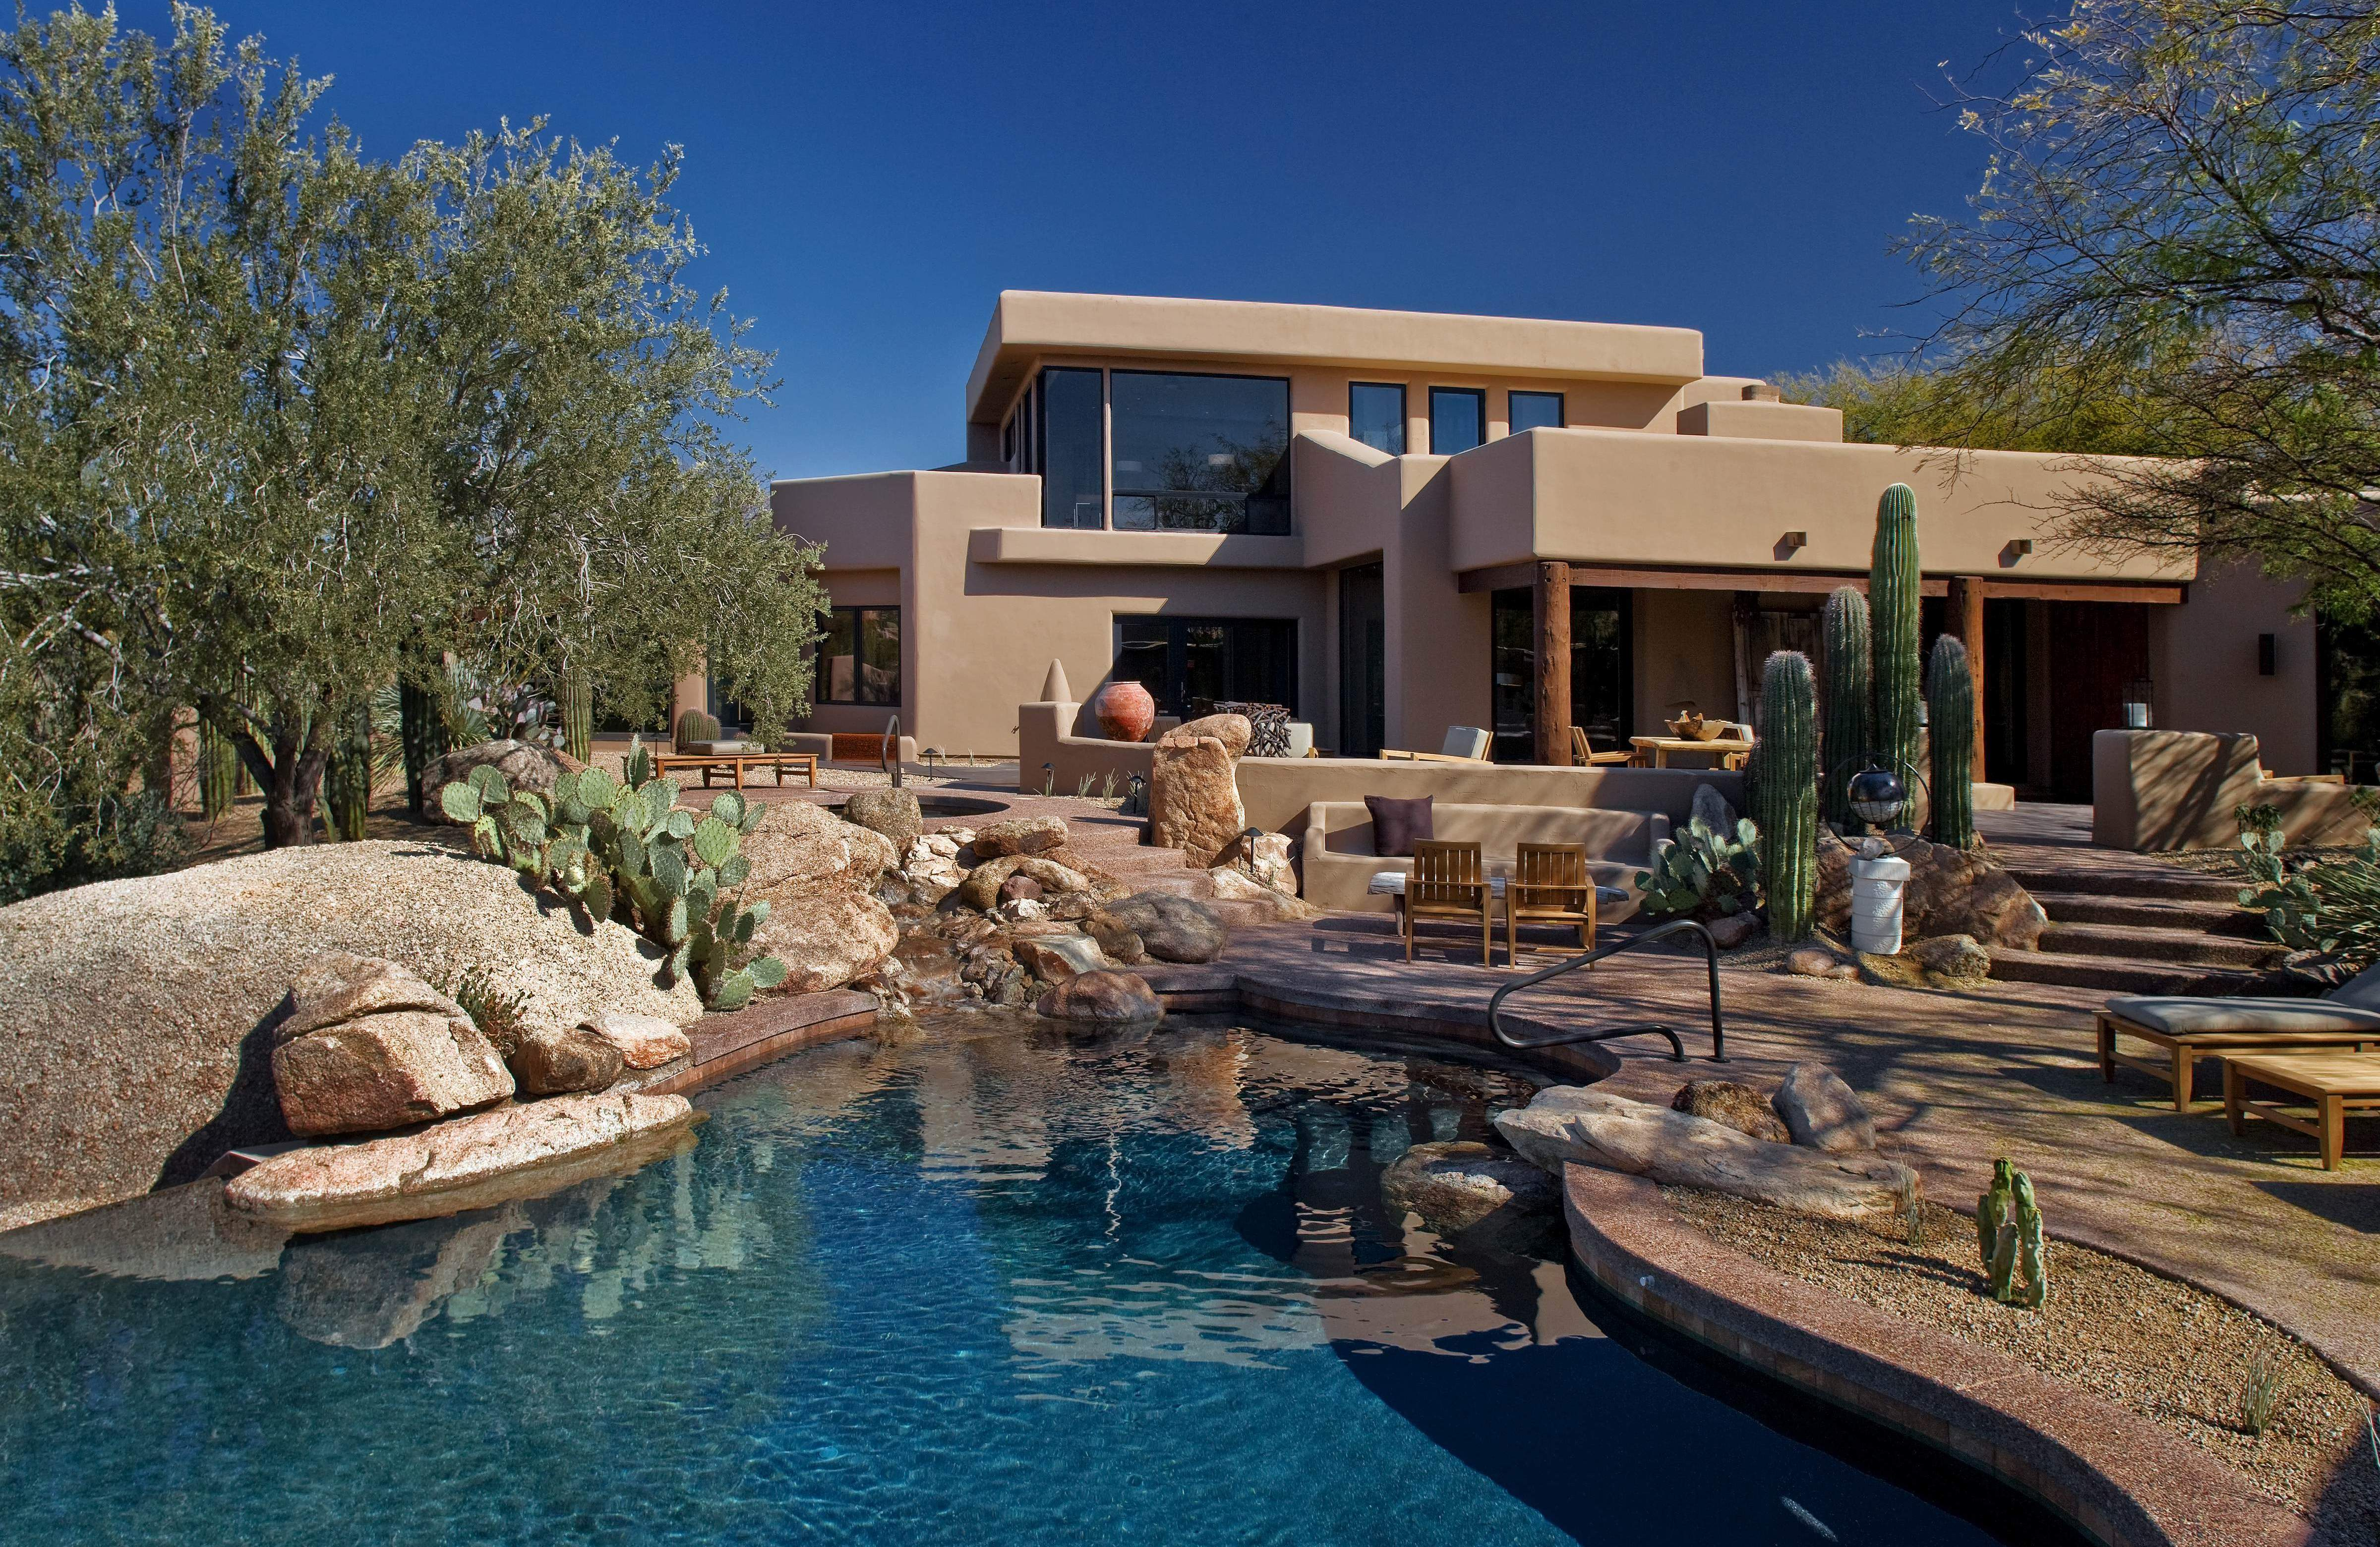 Vacation Rentals Accommodations At The Boulders Resort Spa